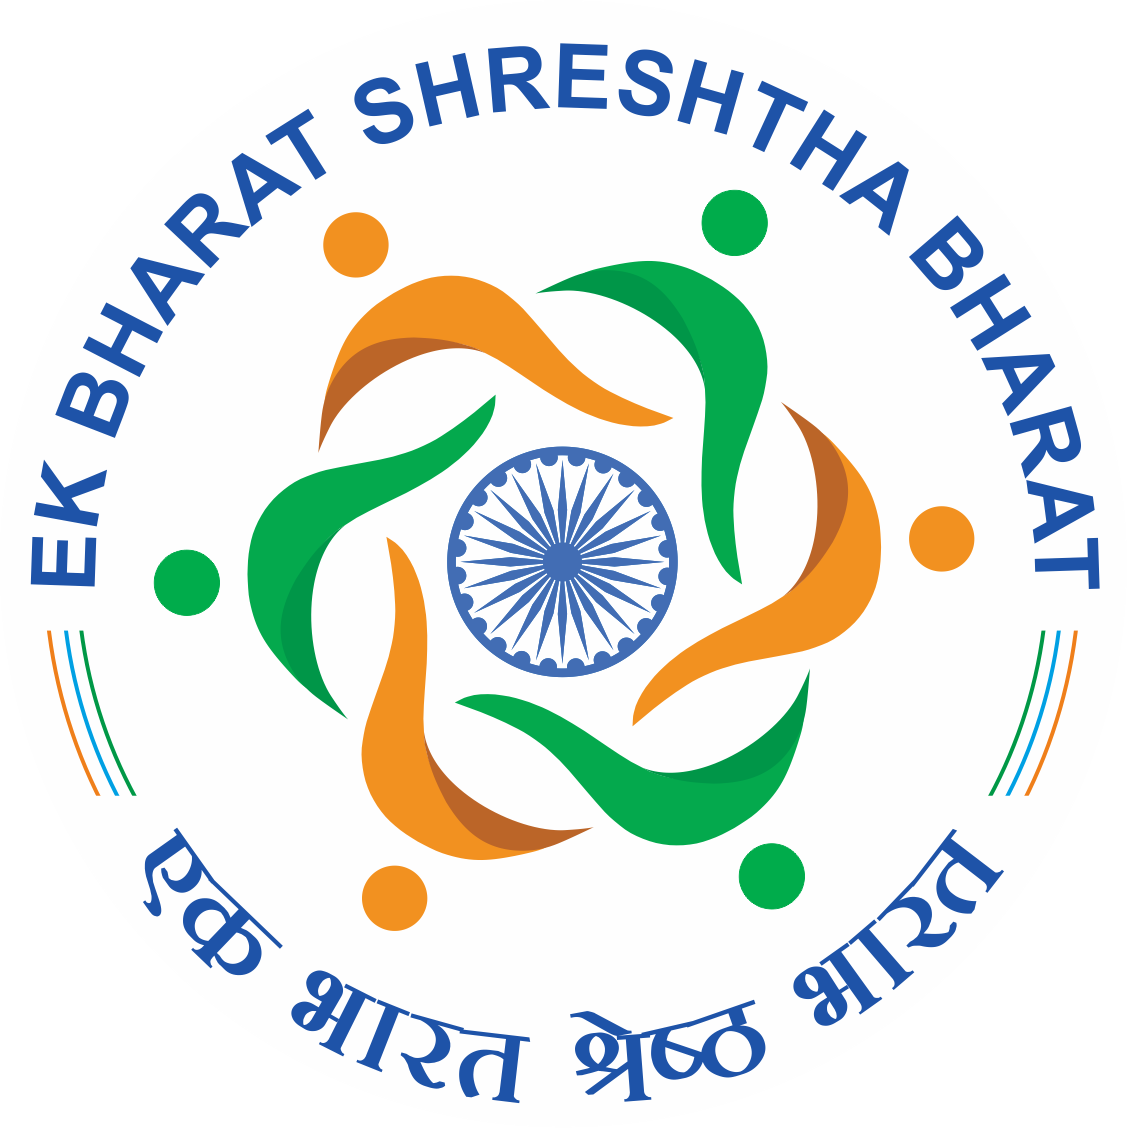 Delhi paired with Sikkim under Ek Bharat Shreshth Bharat programme